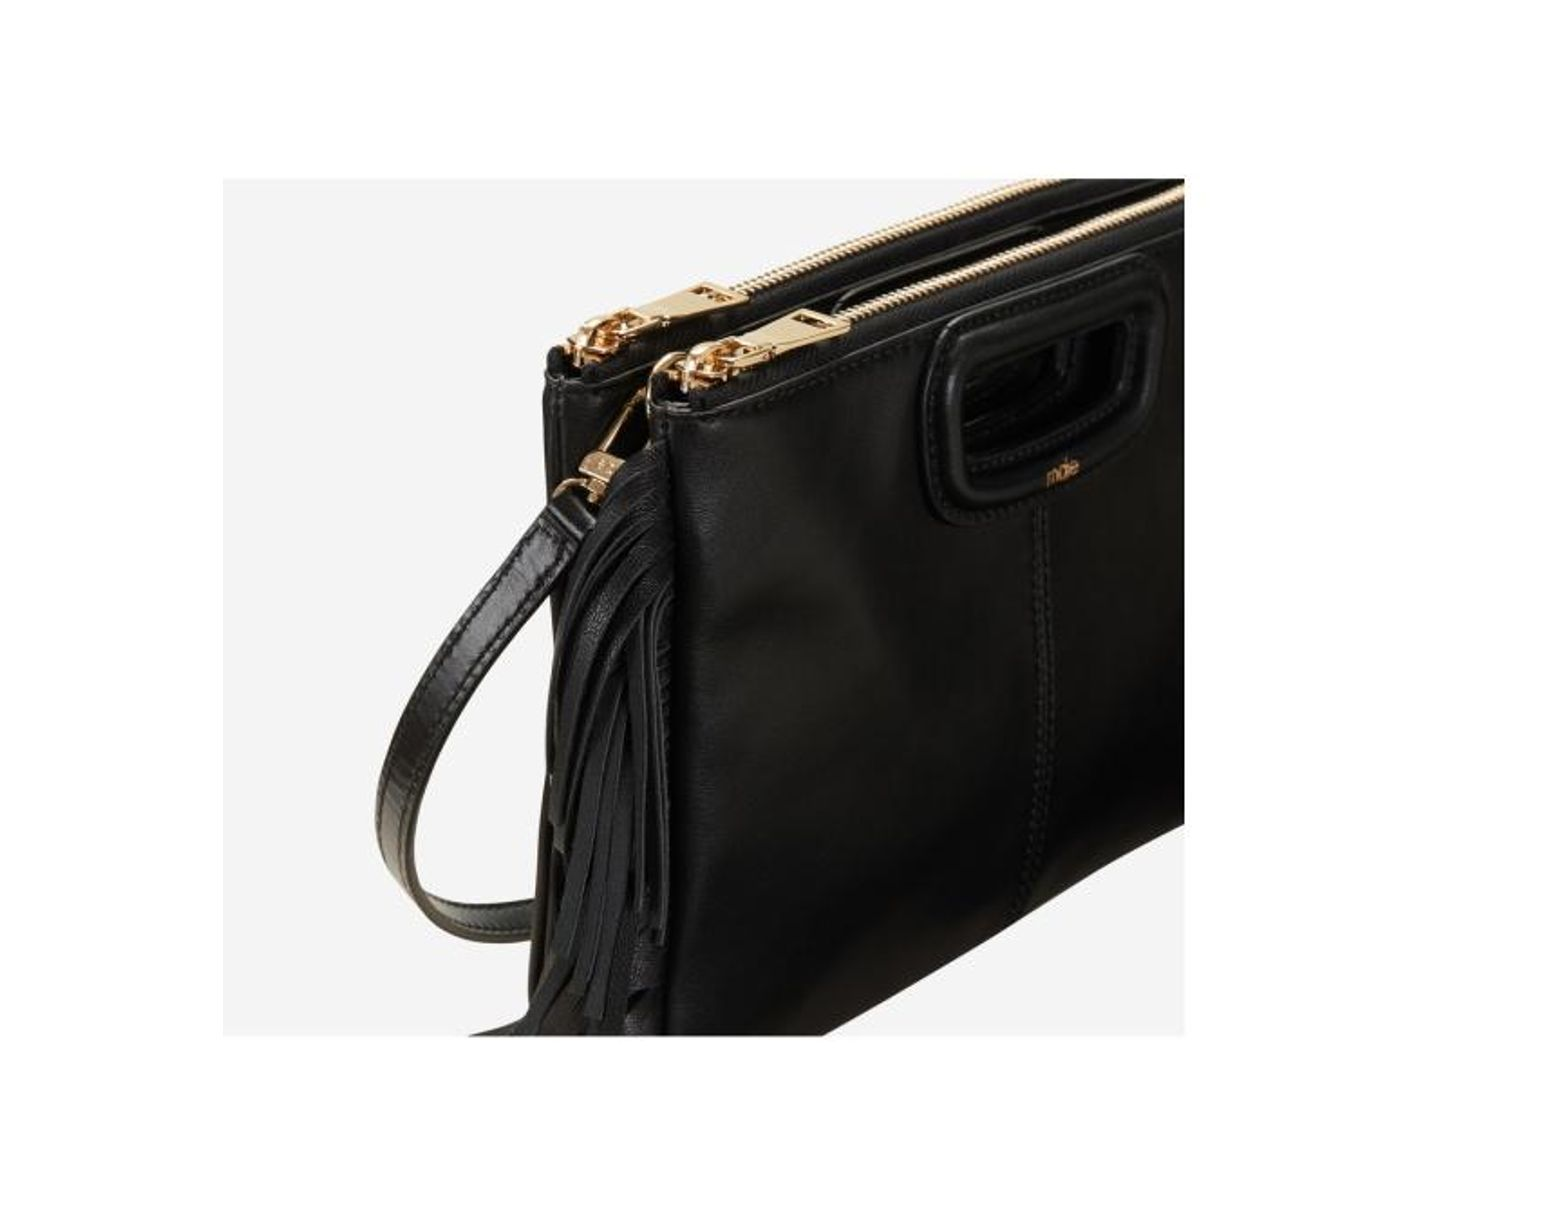 Coloris M Maje En Duo Besace Leather Noir Lyst Sac f7yb6Yg